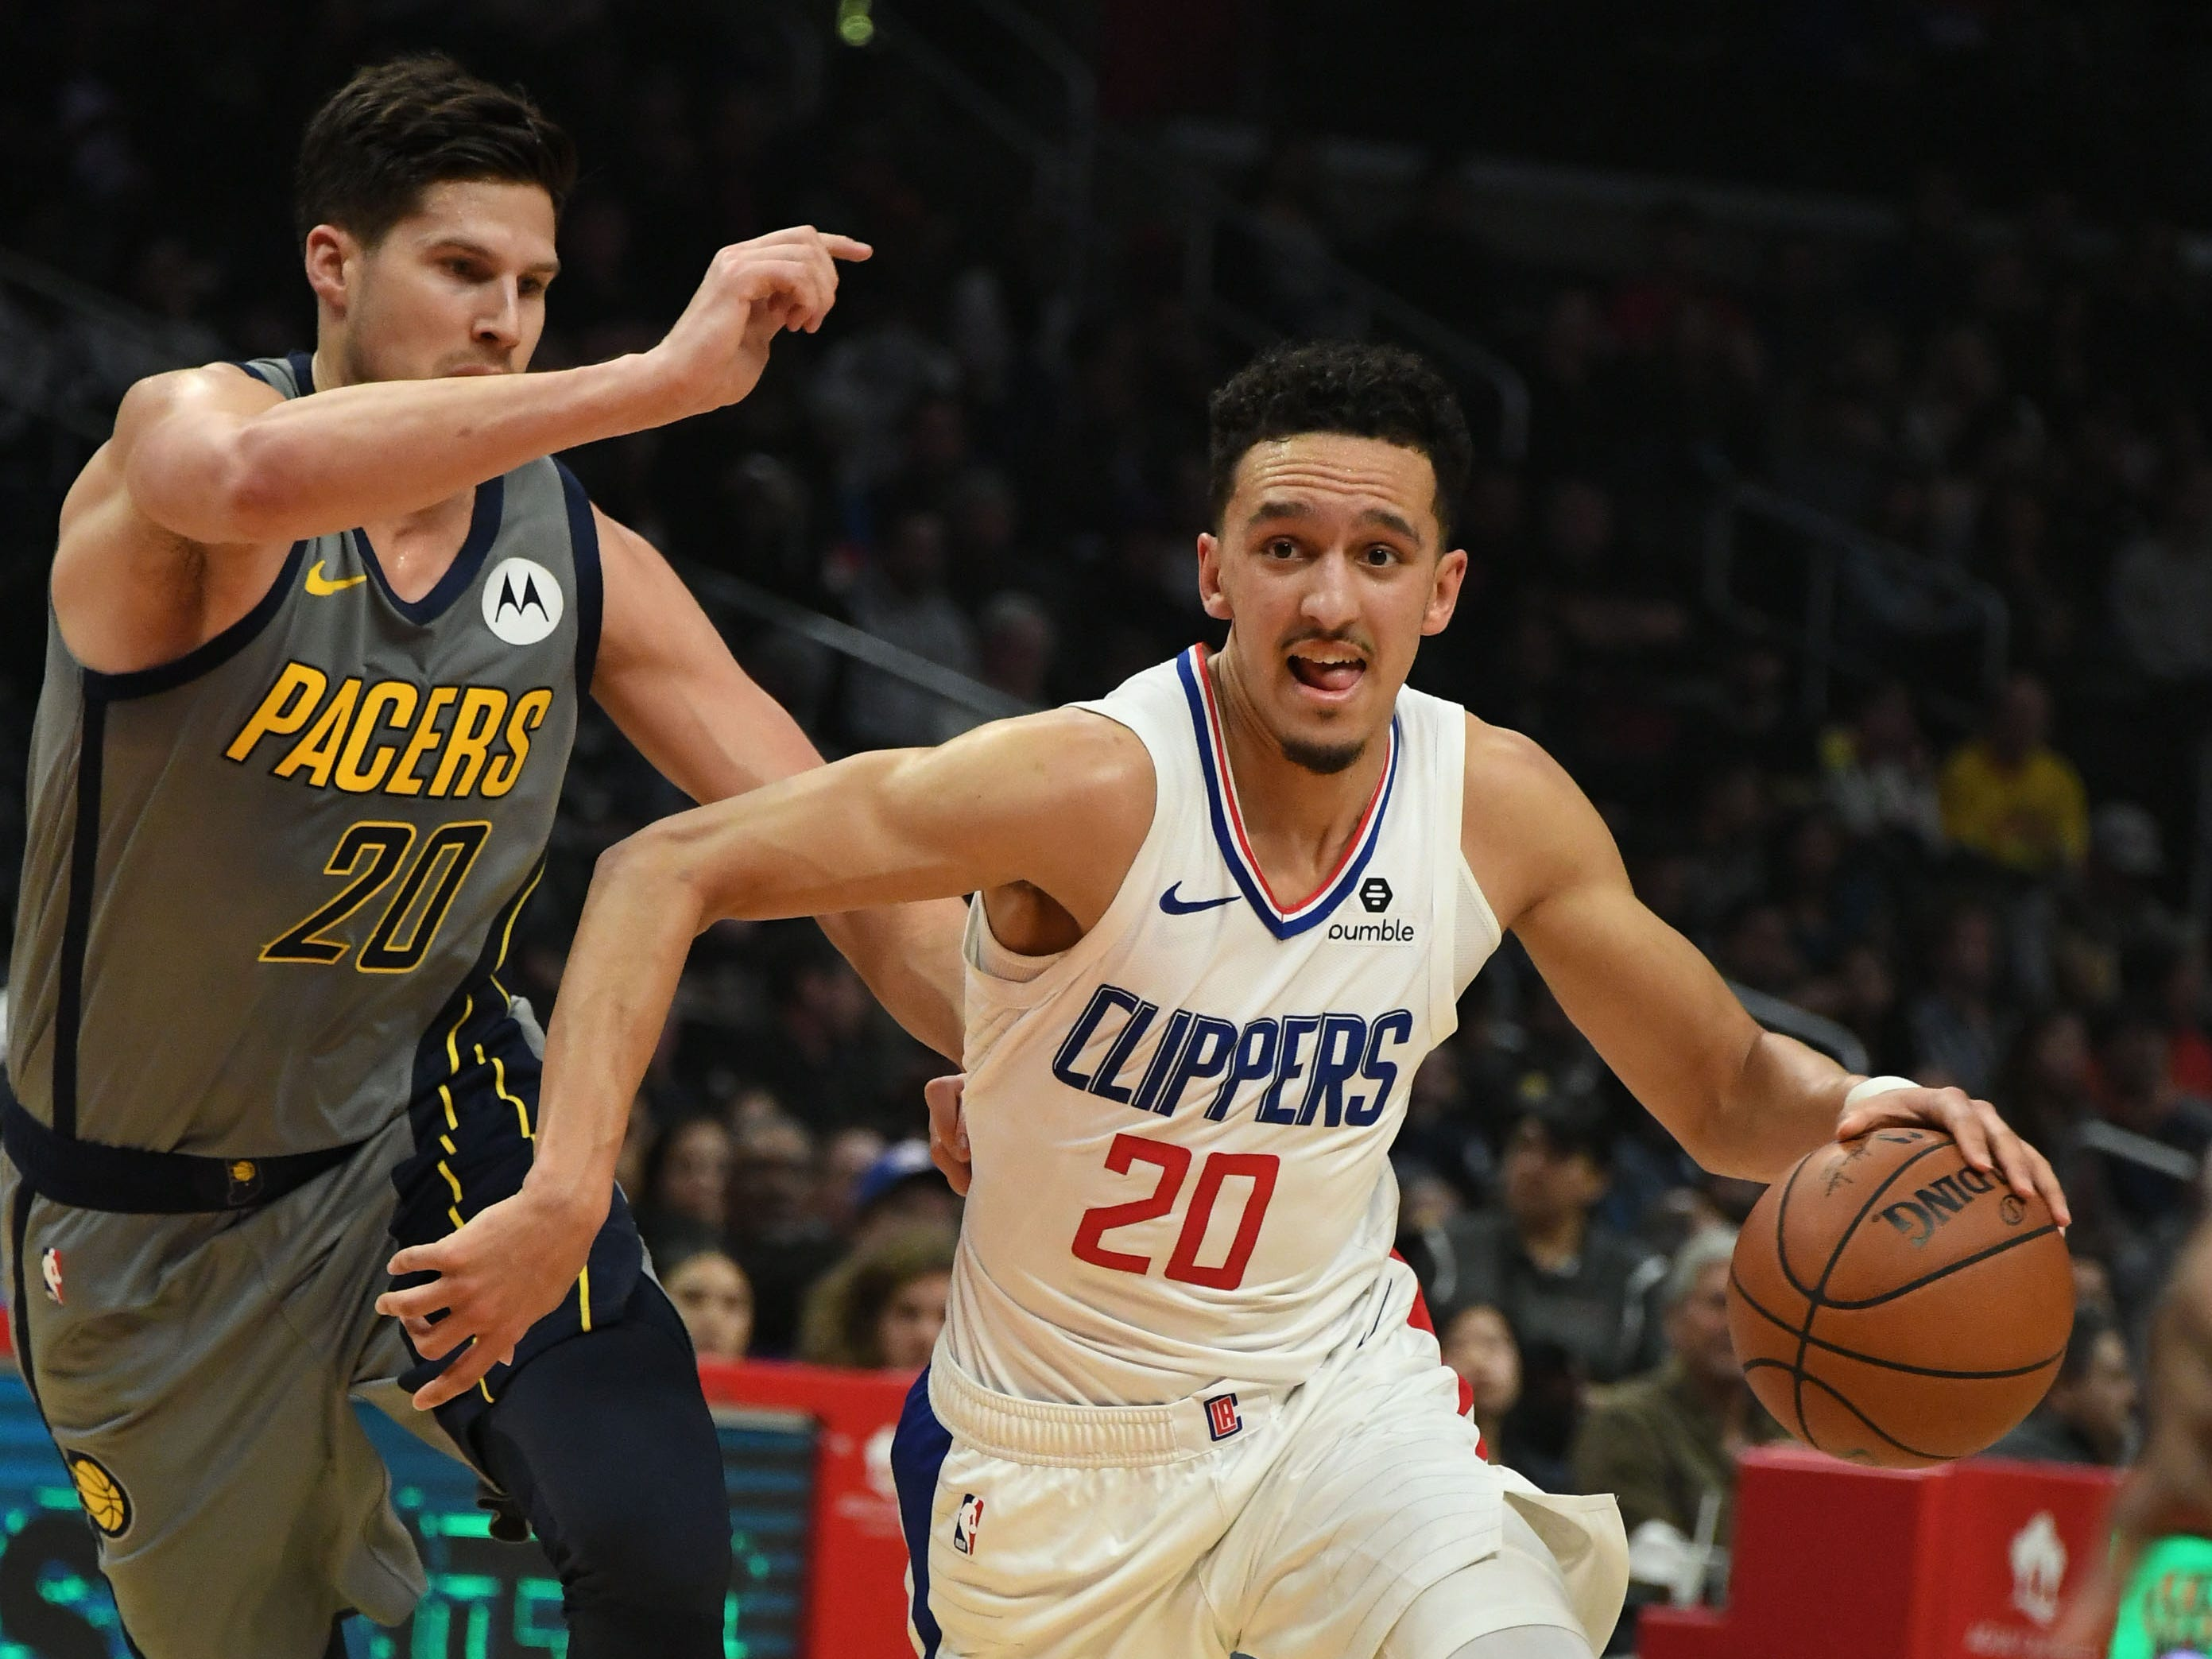 Mar 19, 2019; Los Angeles, CA, USA;  LA Clippers guard Landry Shamet (20) drives to the basket against Indiana Pacers forward Doug McDermott (20) in the first half at the Staples Center.